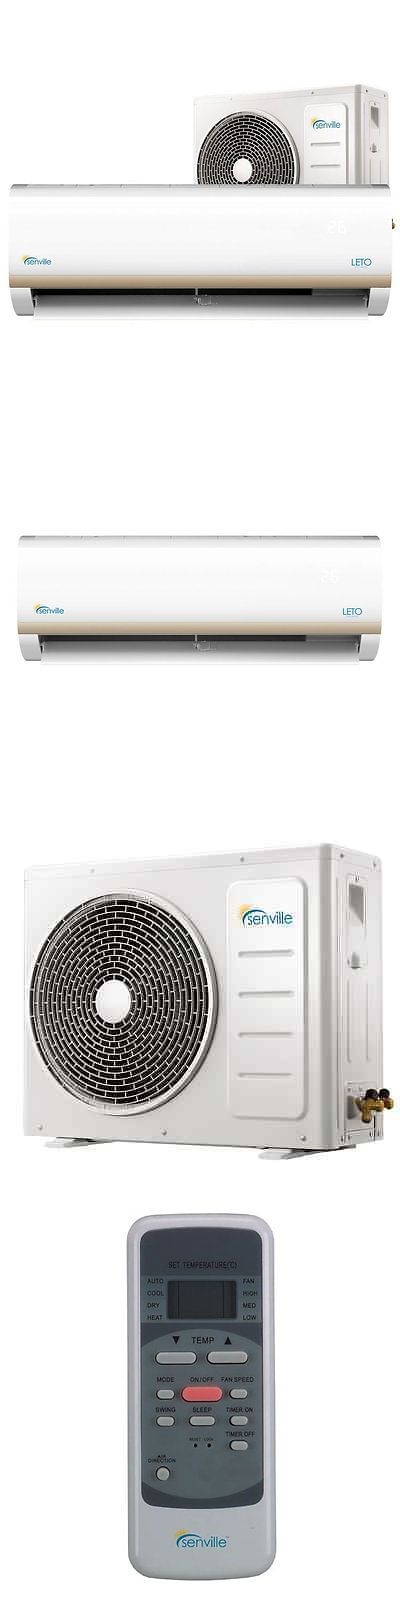 Air Conditioners 69202: 18000 Btu Ductless Air Conditioner With Mini Split Heat Pump 220V Dc Inverter -> BUY IT NOW ONLY: $845.95 on eBay!